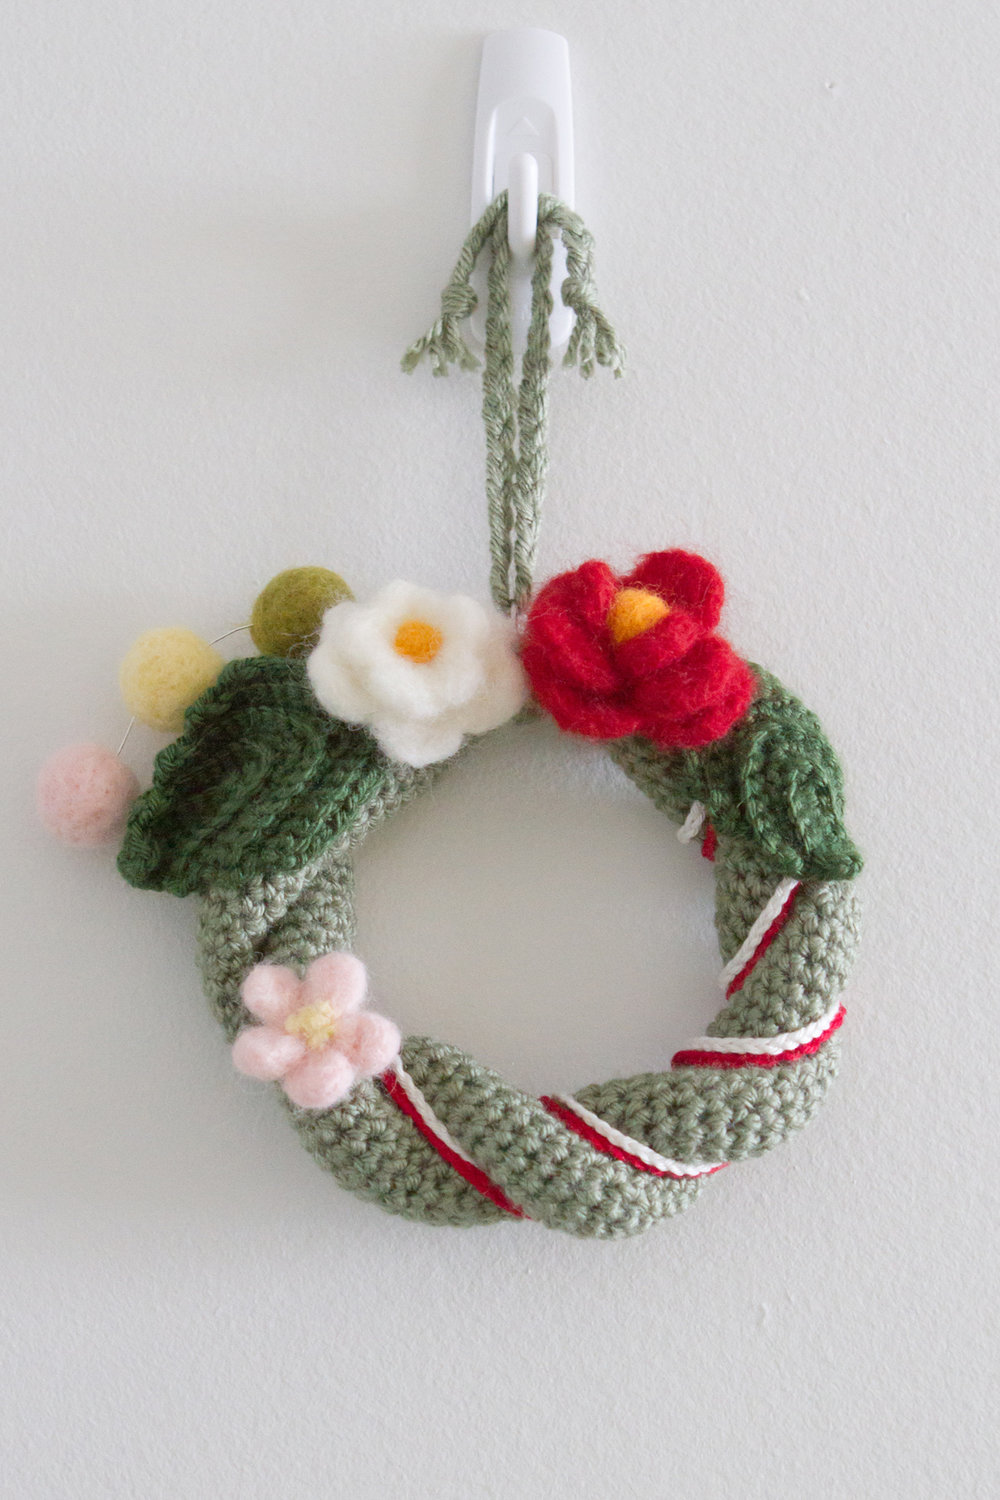 Shime-kazari. The wreath and the leaves are crocheted and the flowers are needle felted. Red and white are an important colour combo for celebrations in Japan.